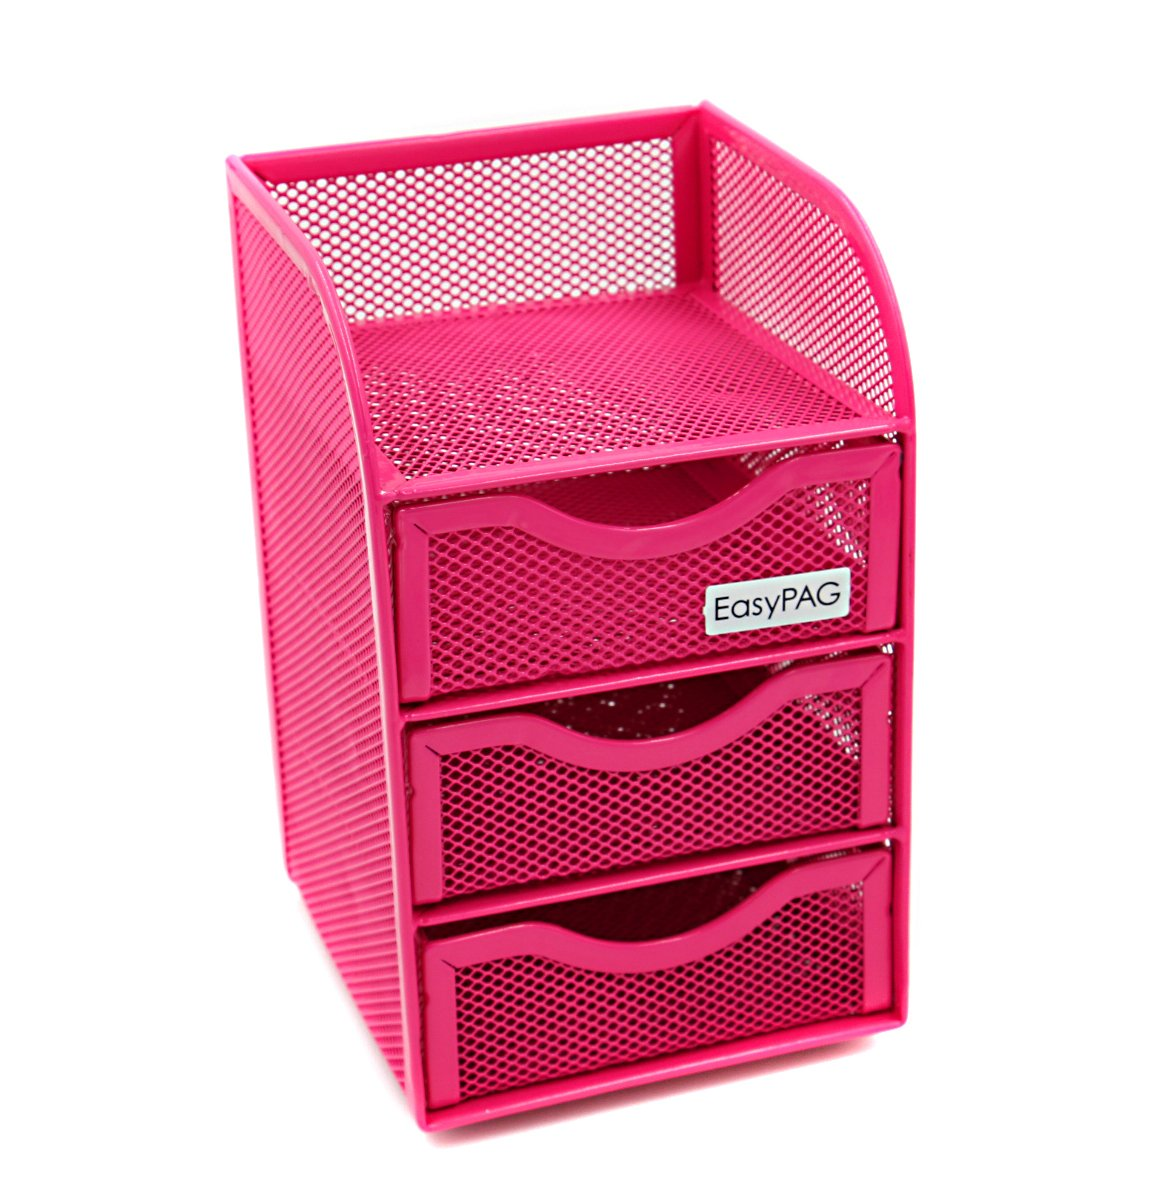 EasyPAG Mesh Desk Accessorie Organizer 3 Drawer Office Supplies Caddy, Pink by EasyPAG